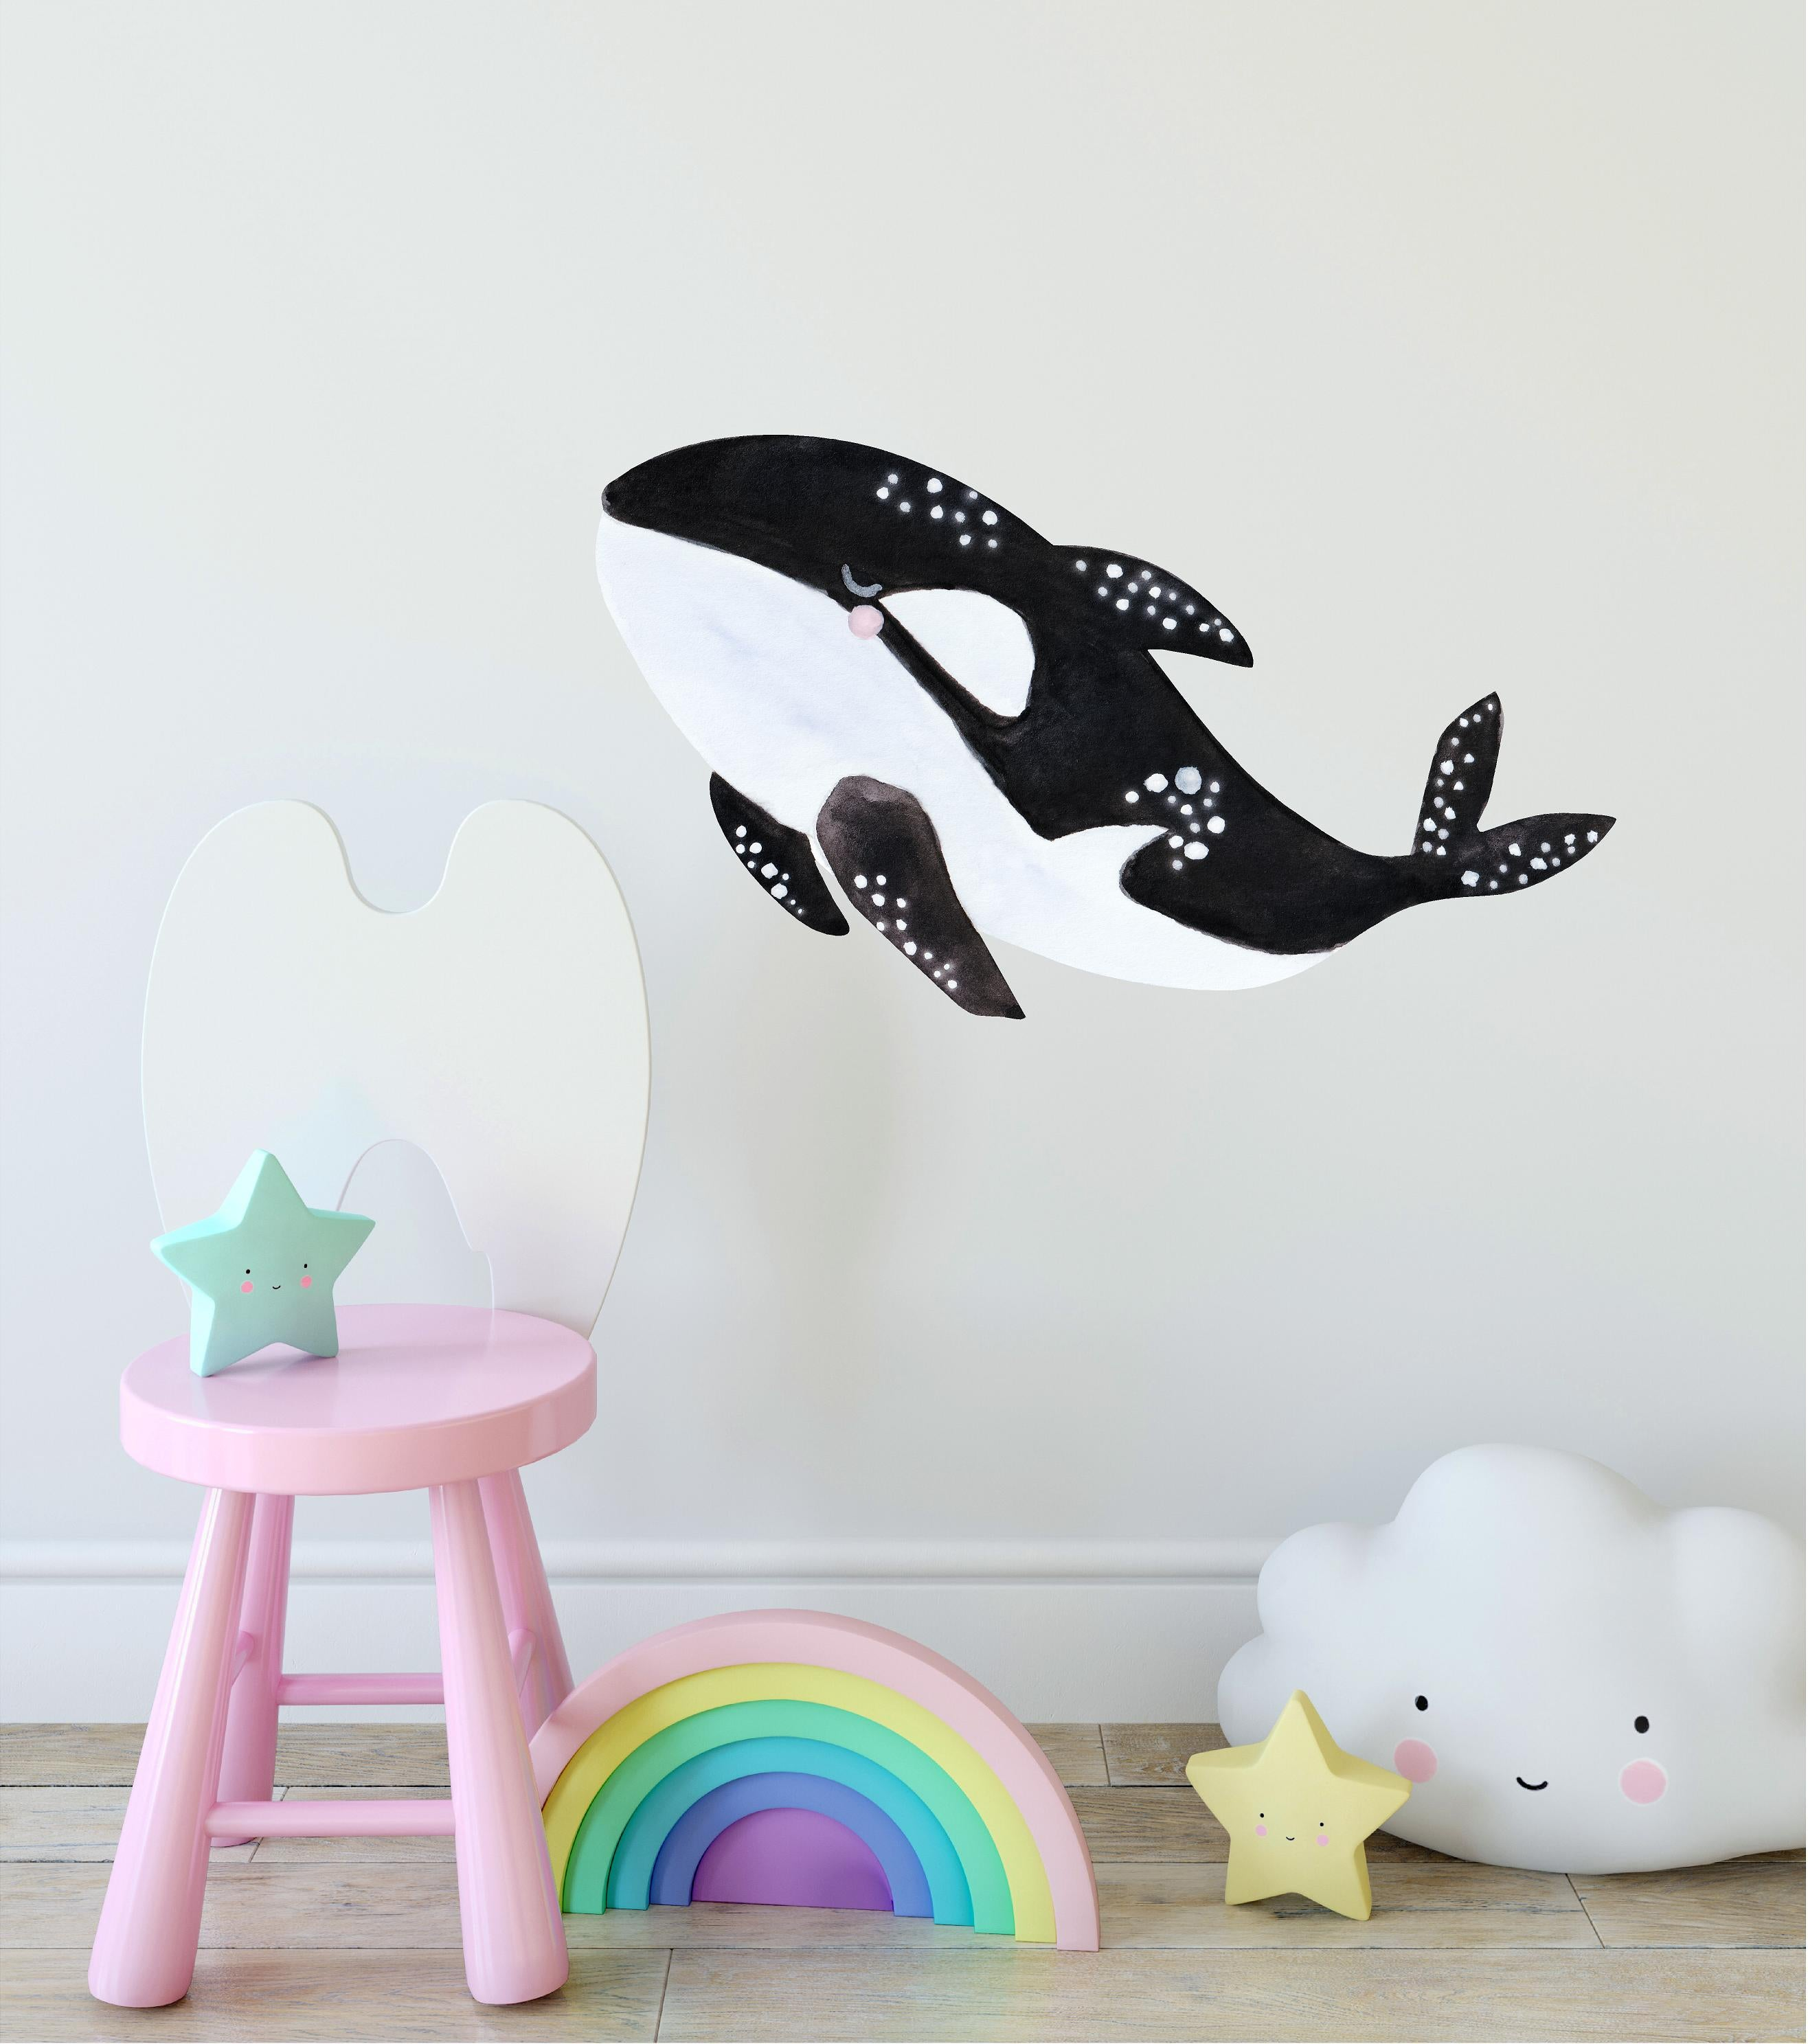 Pastel Killer Whale Orca Wall Decal Ocean Sea Animal Watercolor Wall Sticker Whale Wall Art | DecalBaby